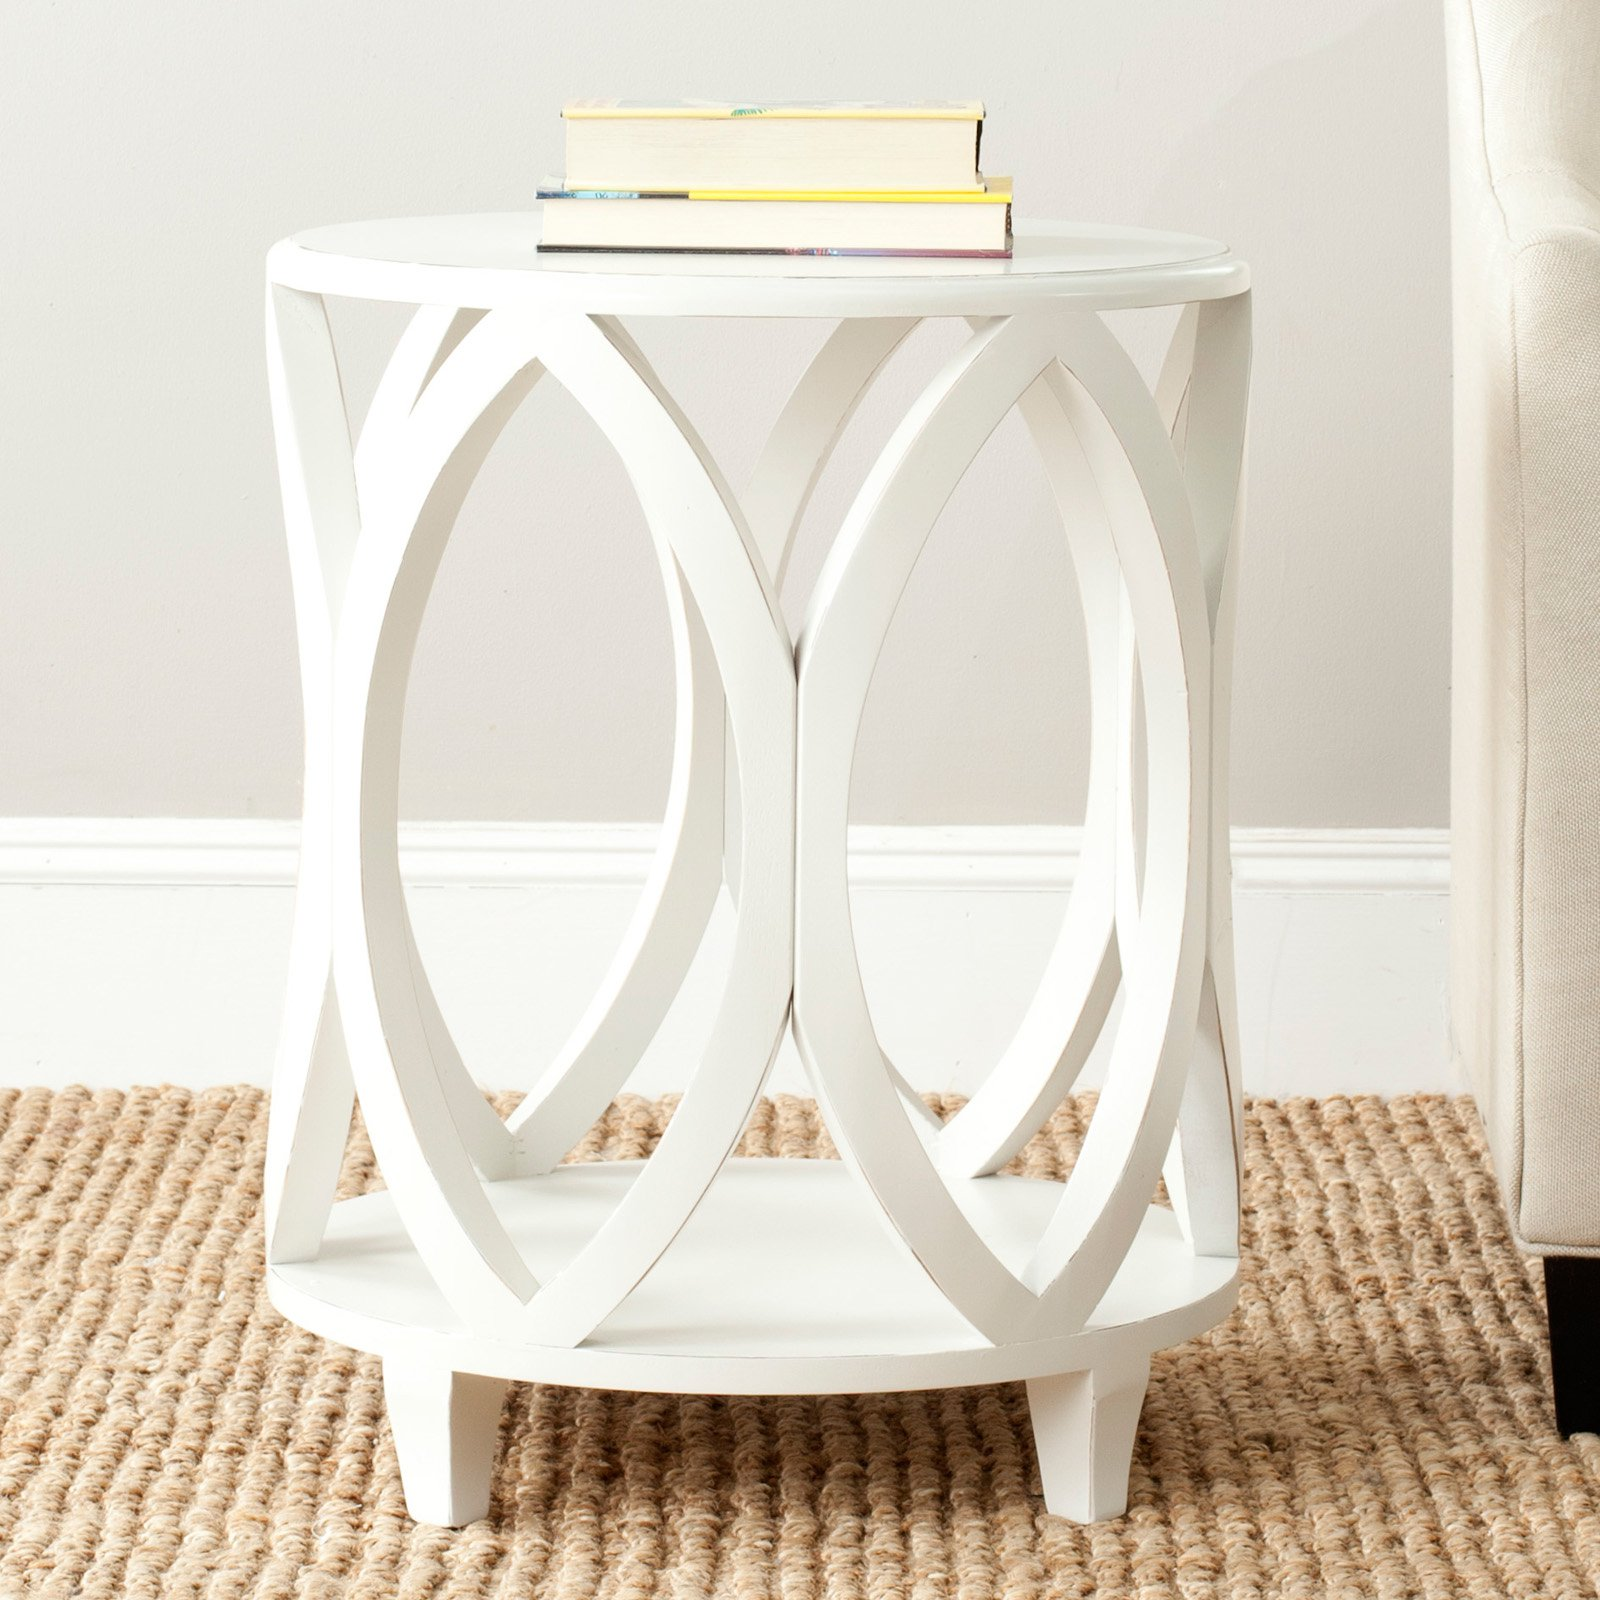 end table distressed off white uptownartsgranburytx safavieh janika accent tables bedroom set plant stand round marble dining dark wood furniture bathroom faucets room edmonton